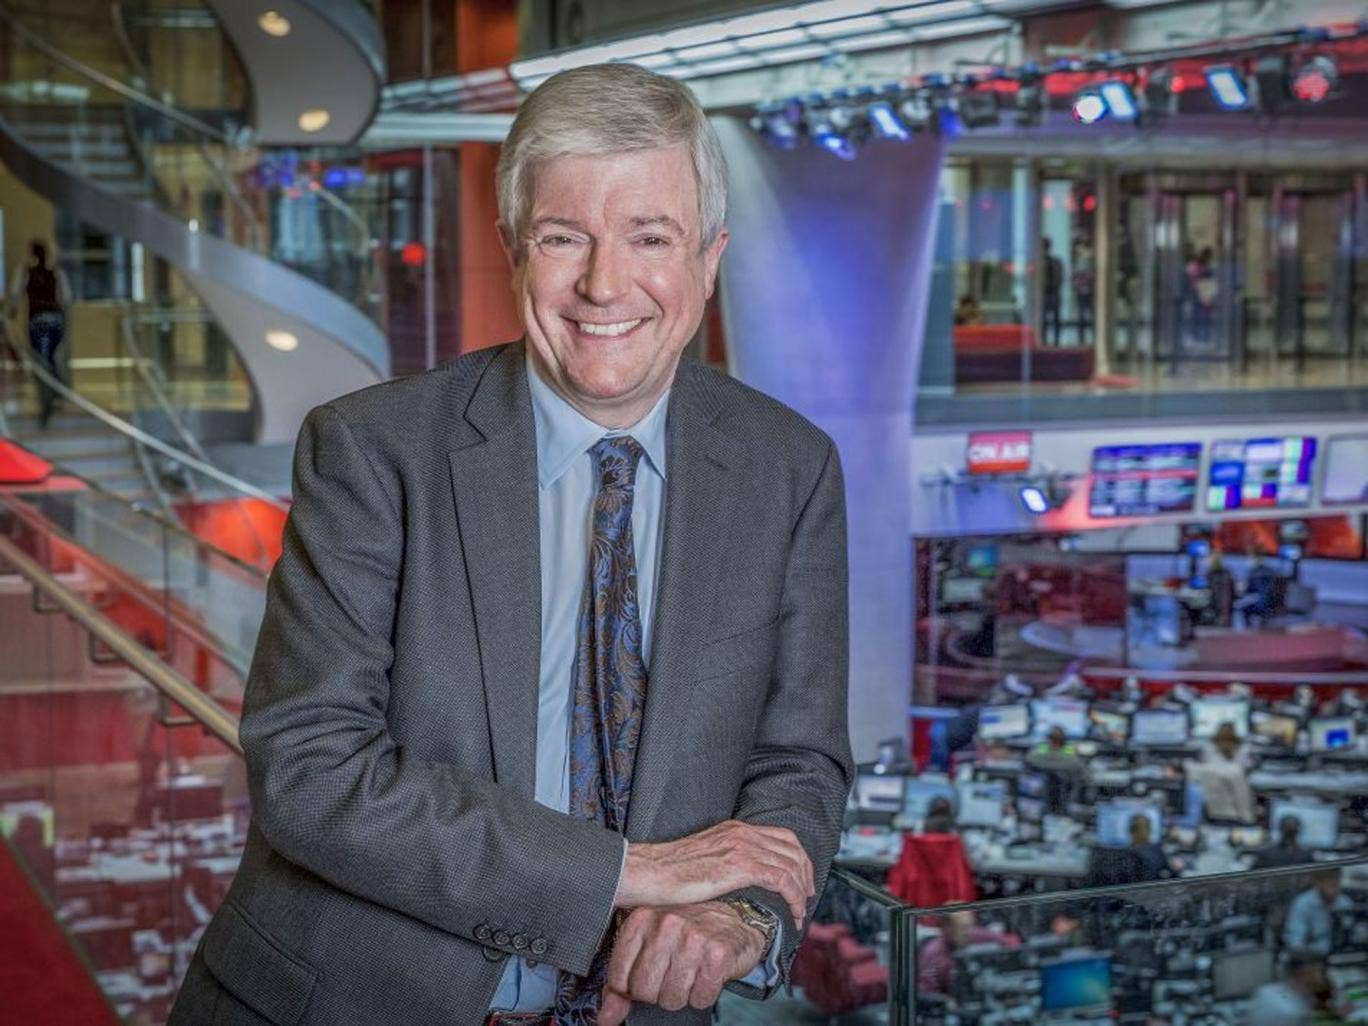 Centre stage: Tony Hall plans live broadcasts from the National Theatre